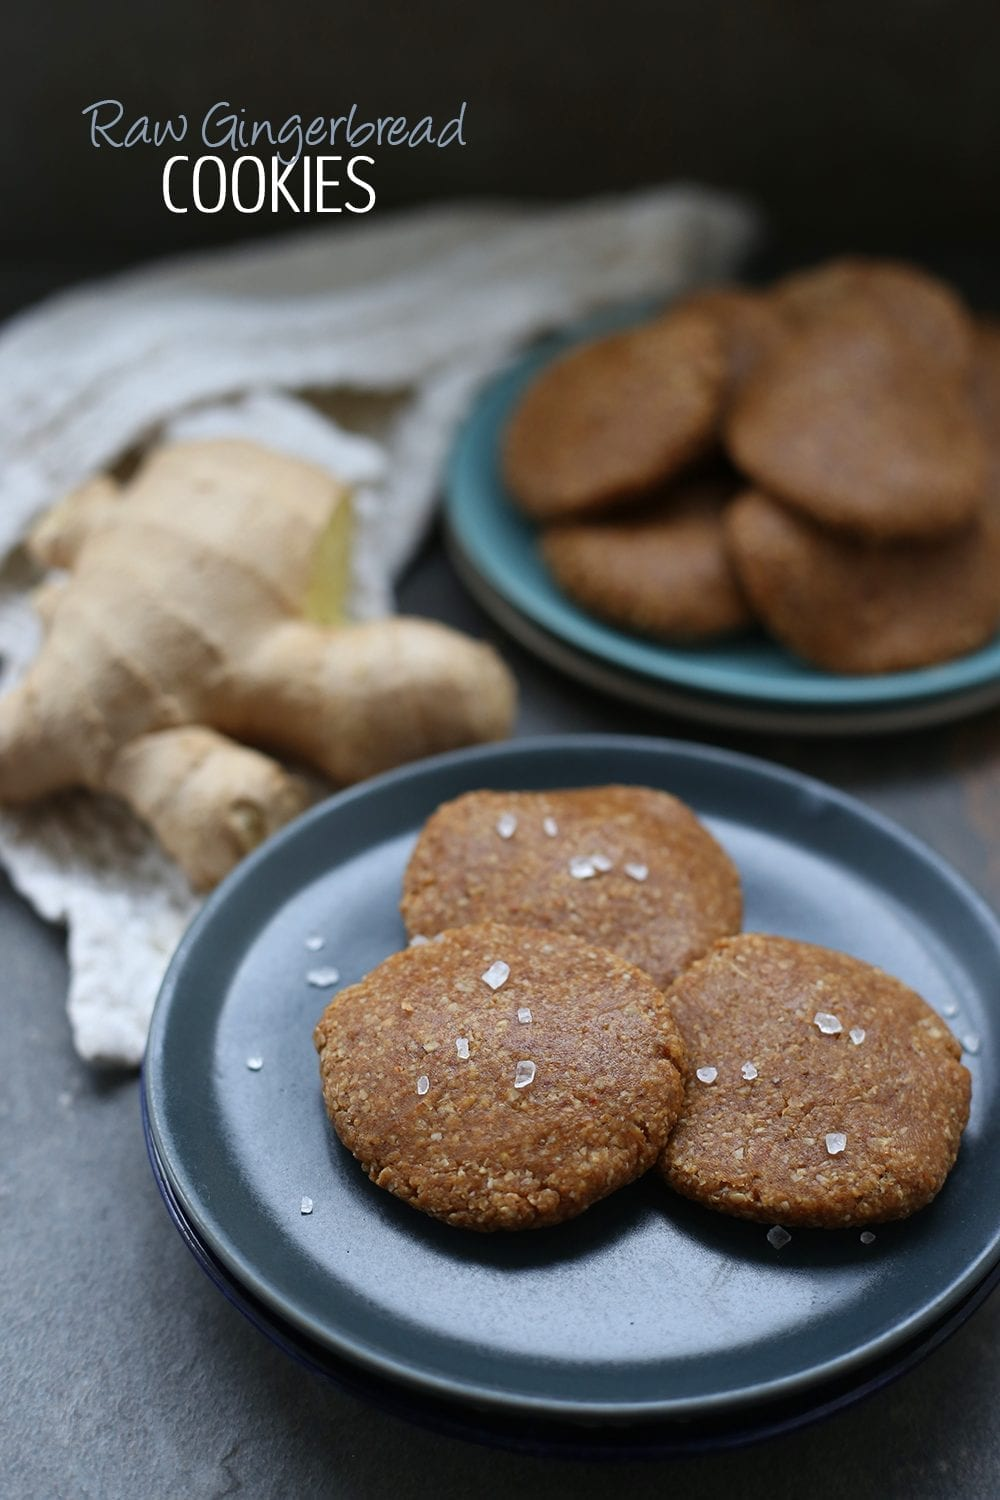 A simple and delicious recipe for Raw Gingerbread Cookies made with wholesome ingredients like dates and nuts. Better yet, there's no oven required!